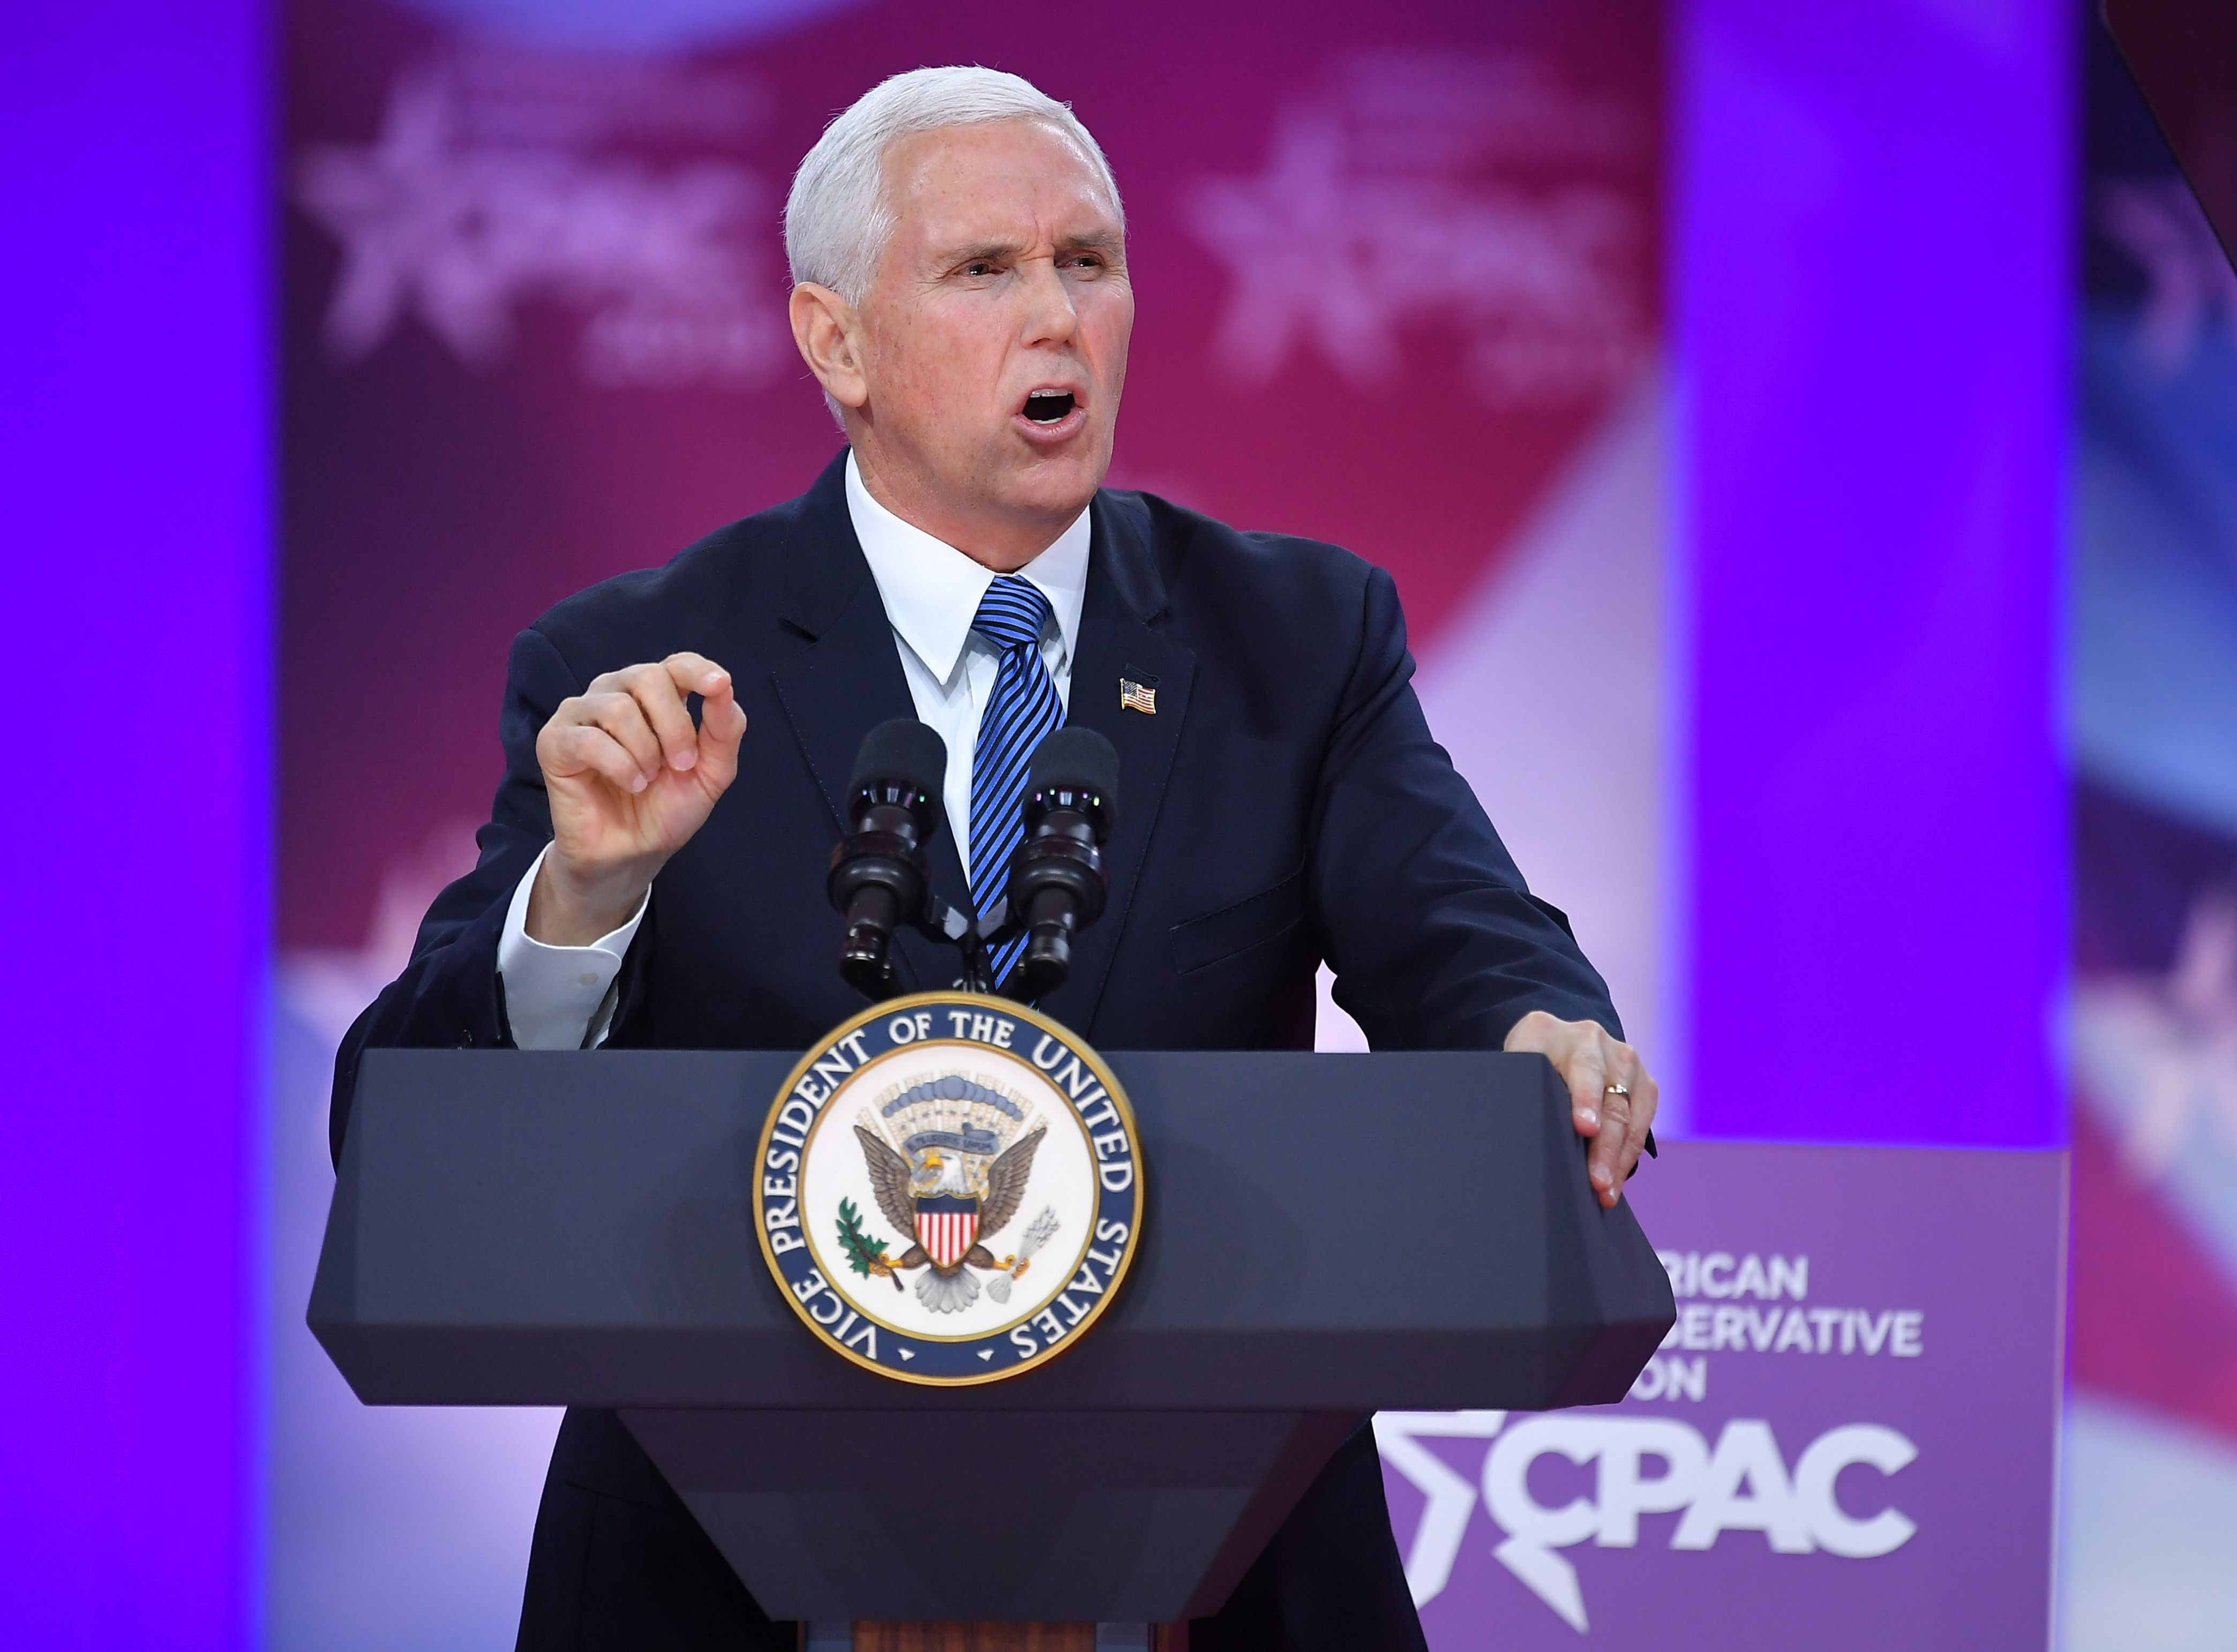 Iceland LGBT group calls for government to reconsider Mike Pence visit